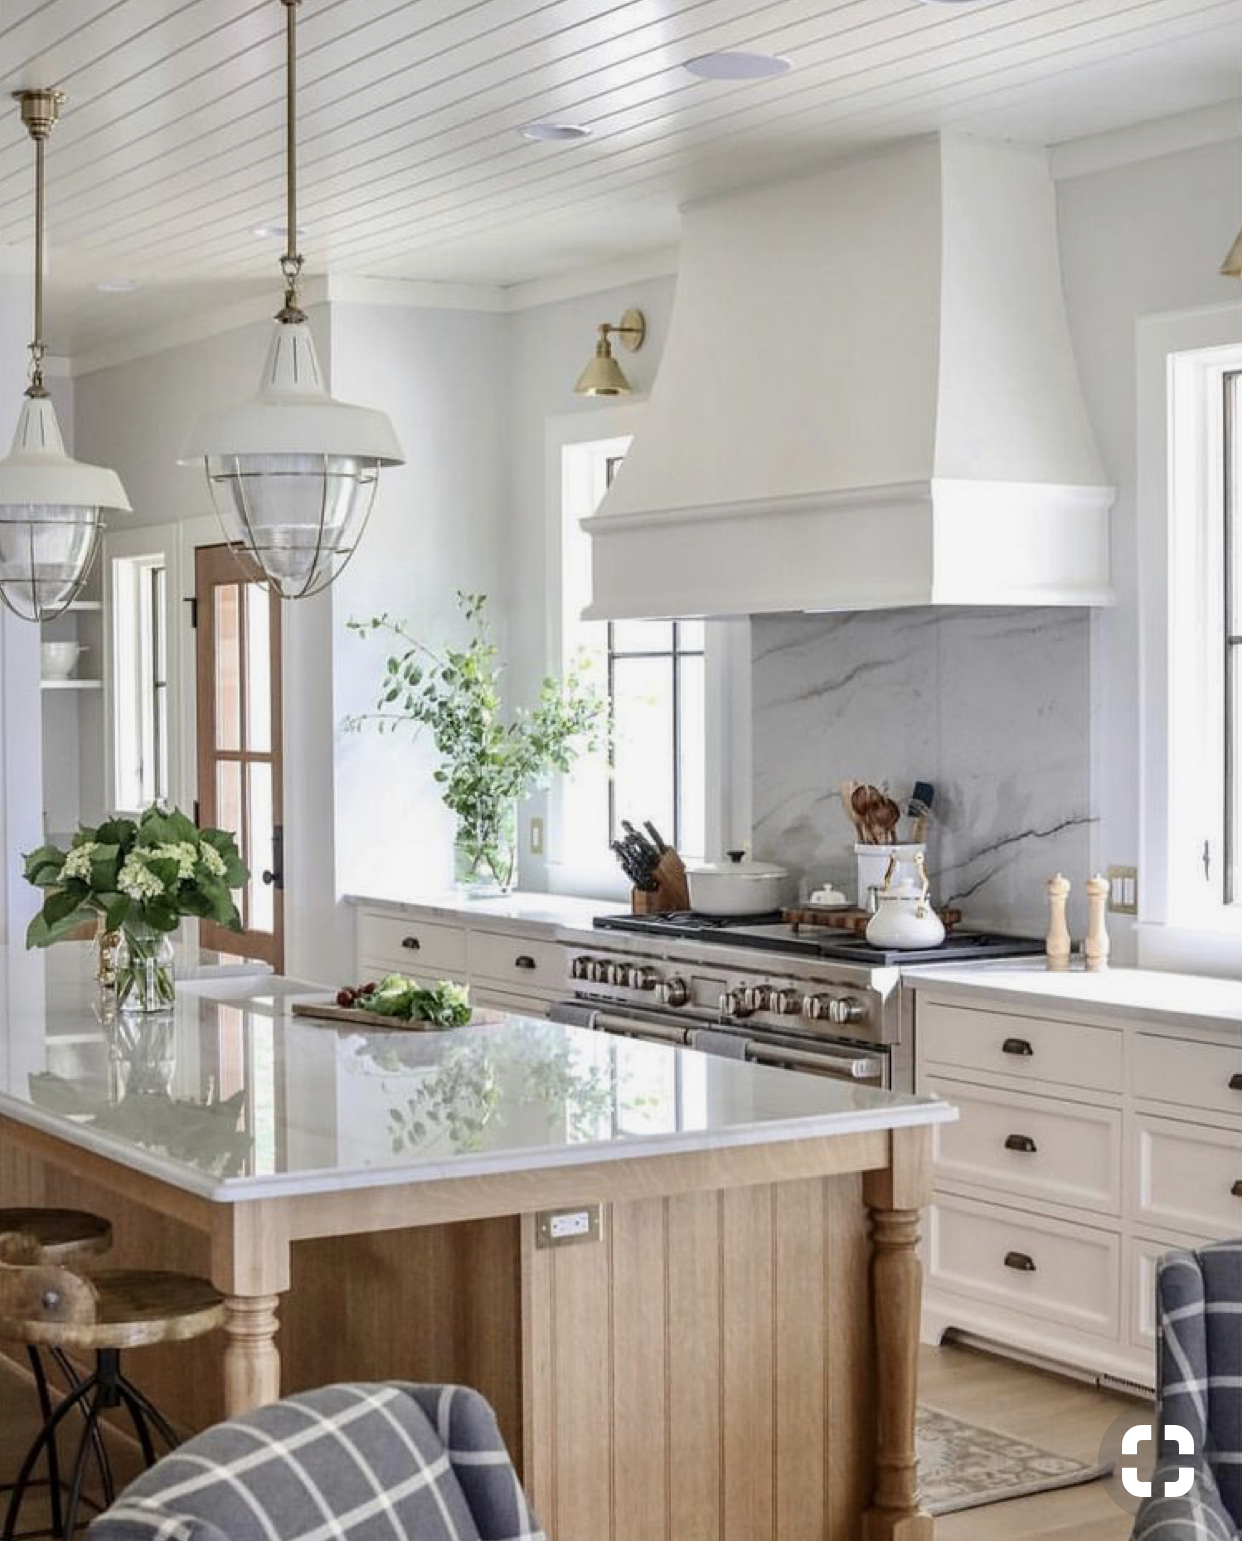 *Kitchen Inspiration: Love the wood stained island that adds warmth to the white kitchen